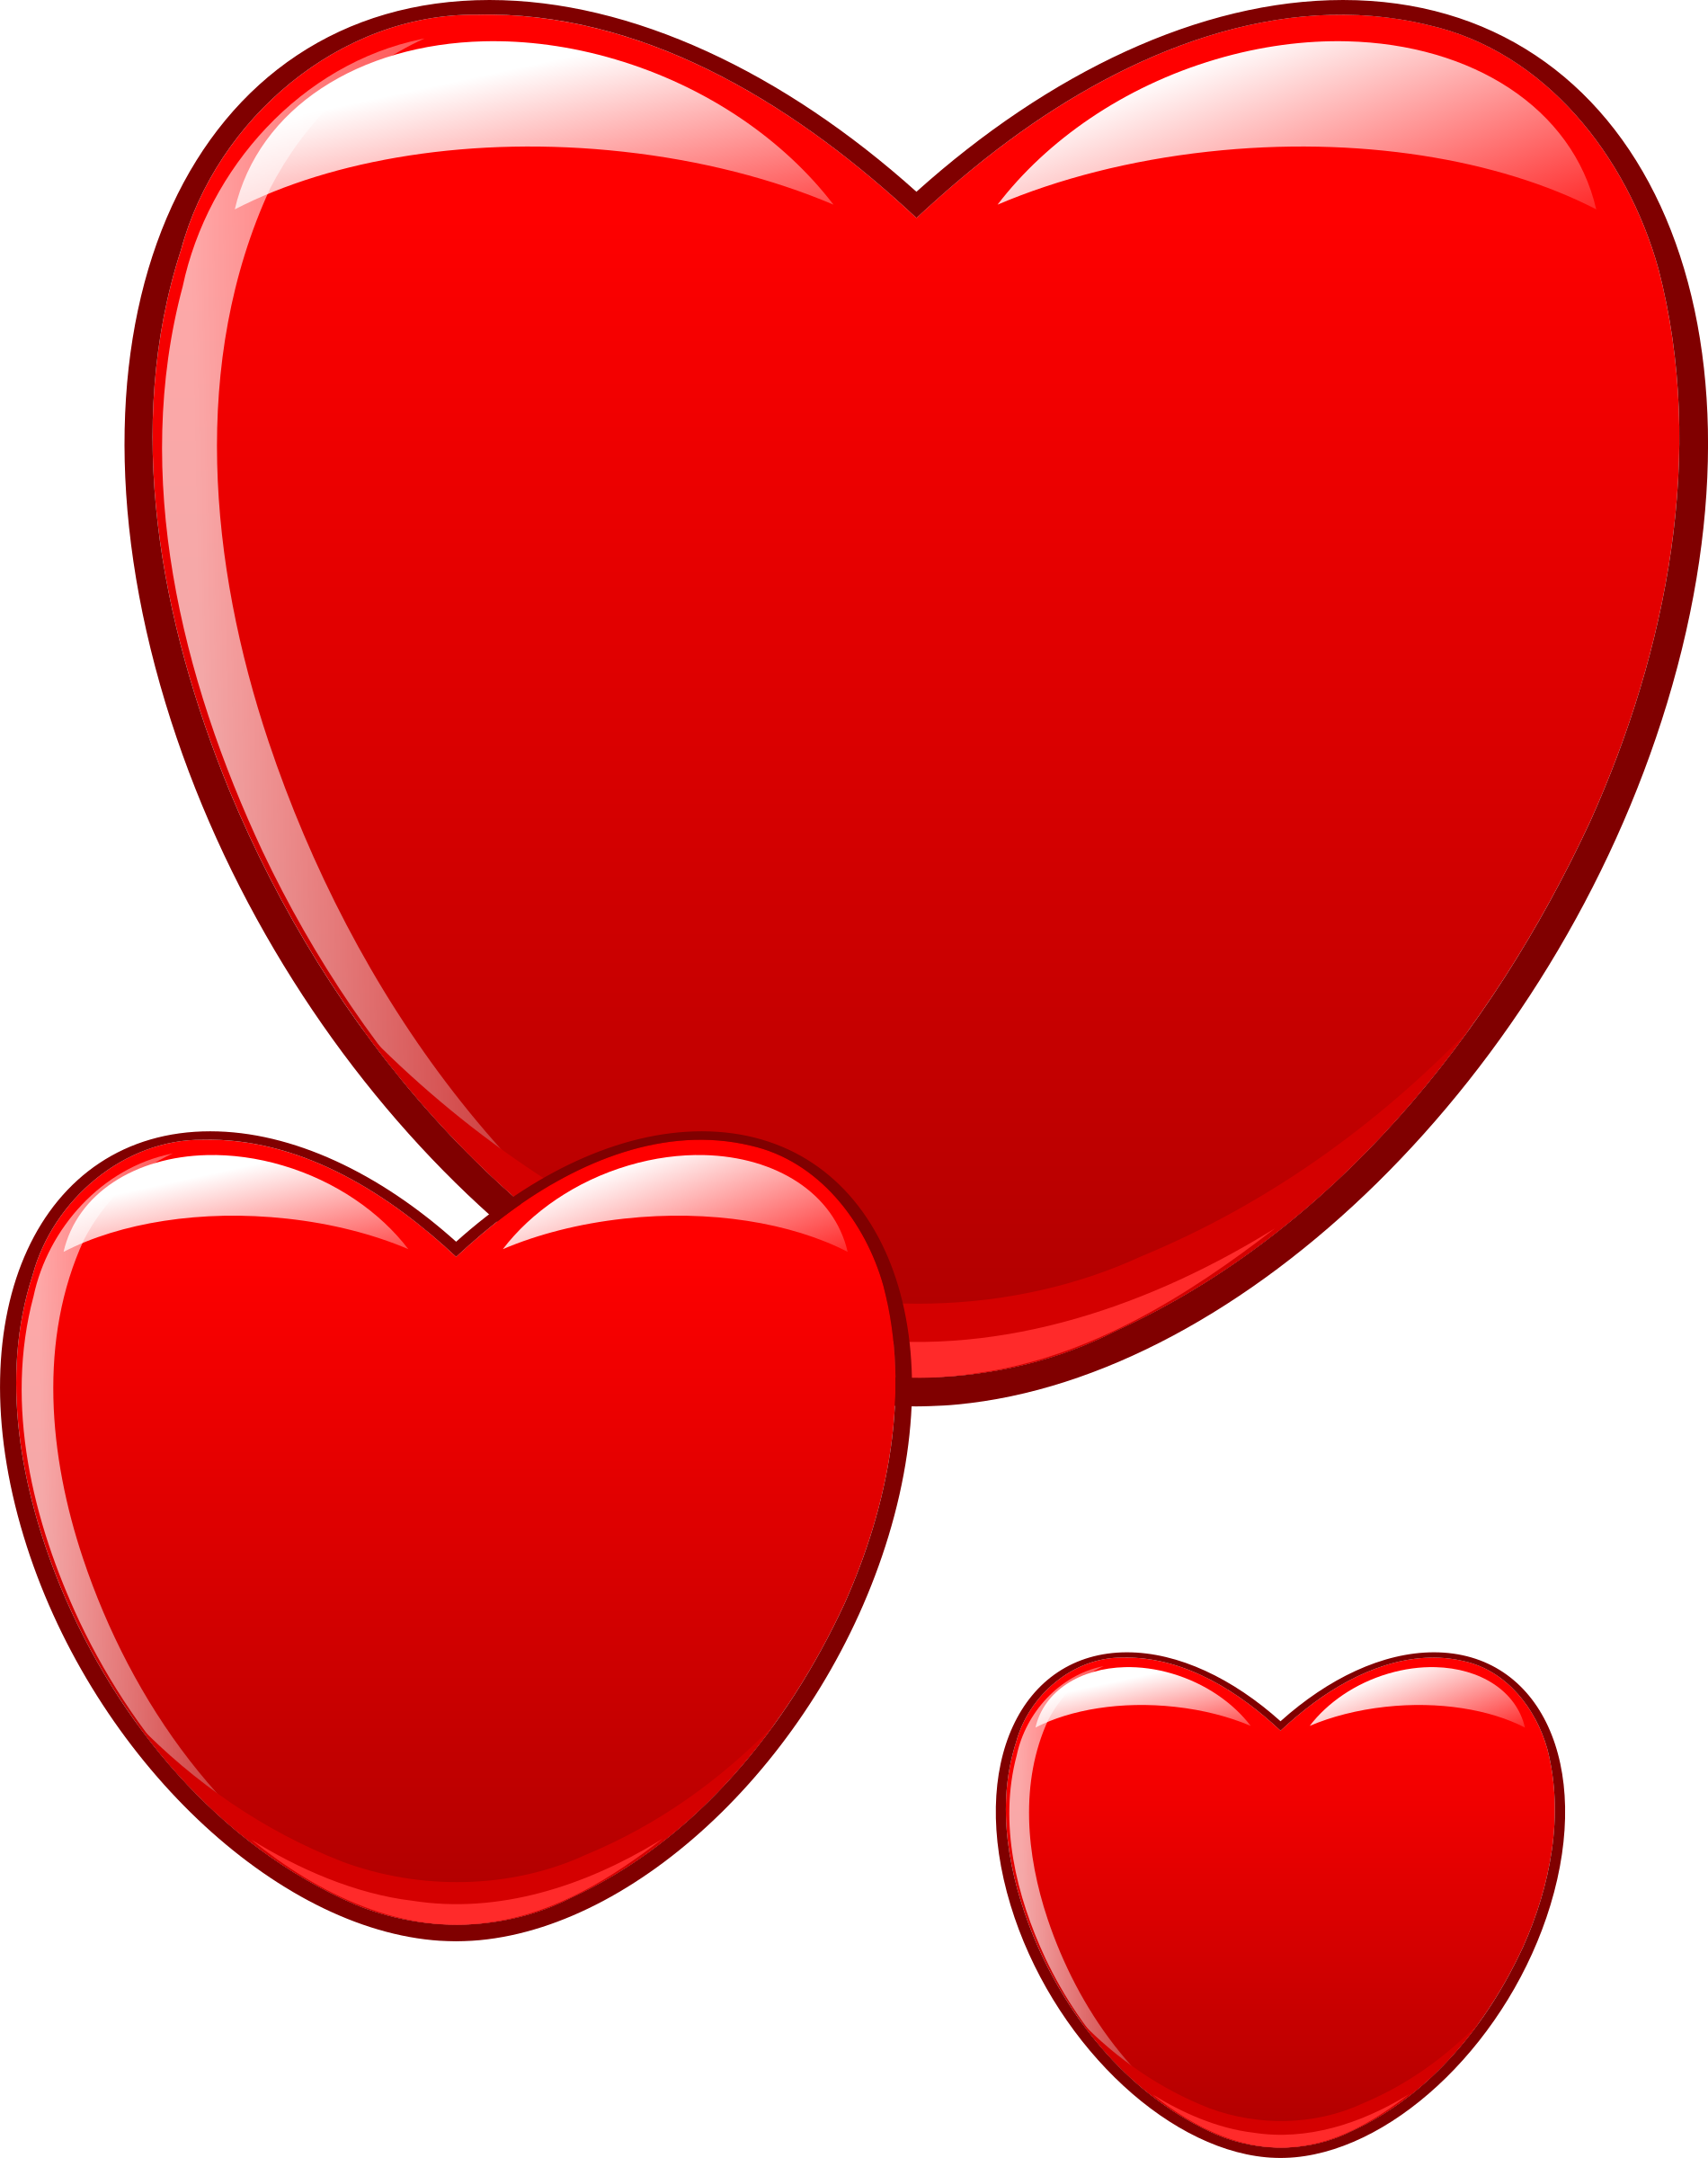 Heart beat clipart image freeuse stock Clipart - Hearts that beat as one image freeuse stock